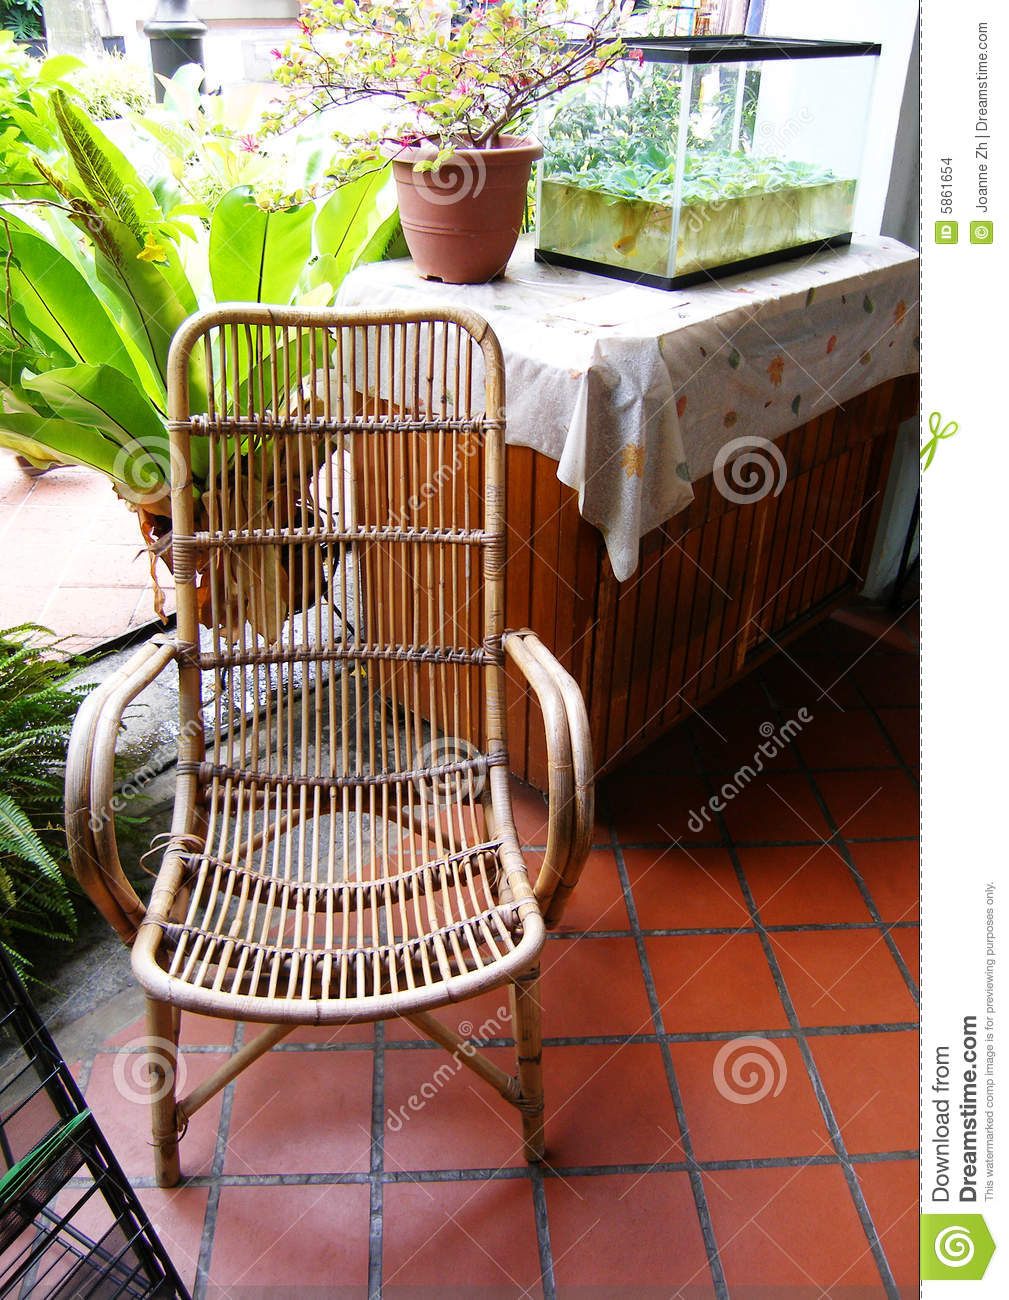 Outdoor cane furniture stock images image 5861654 for Cane furniture ideas